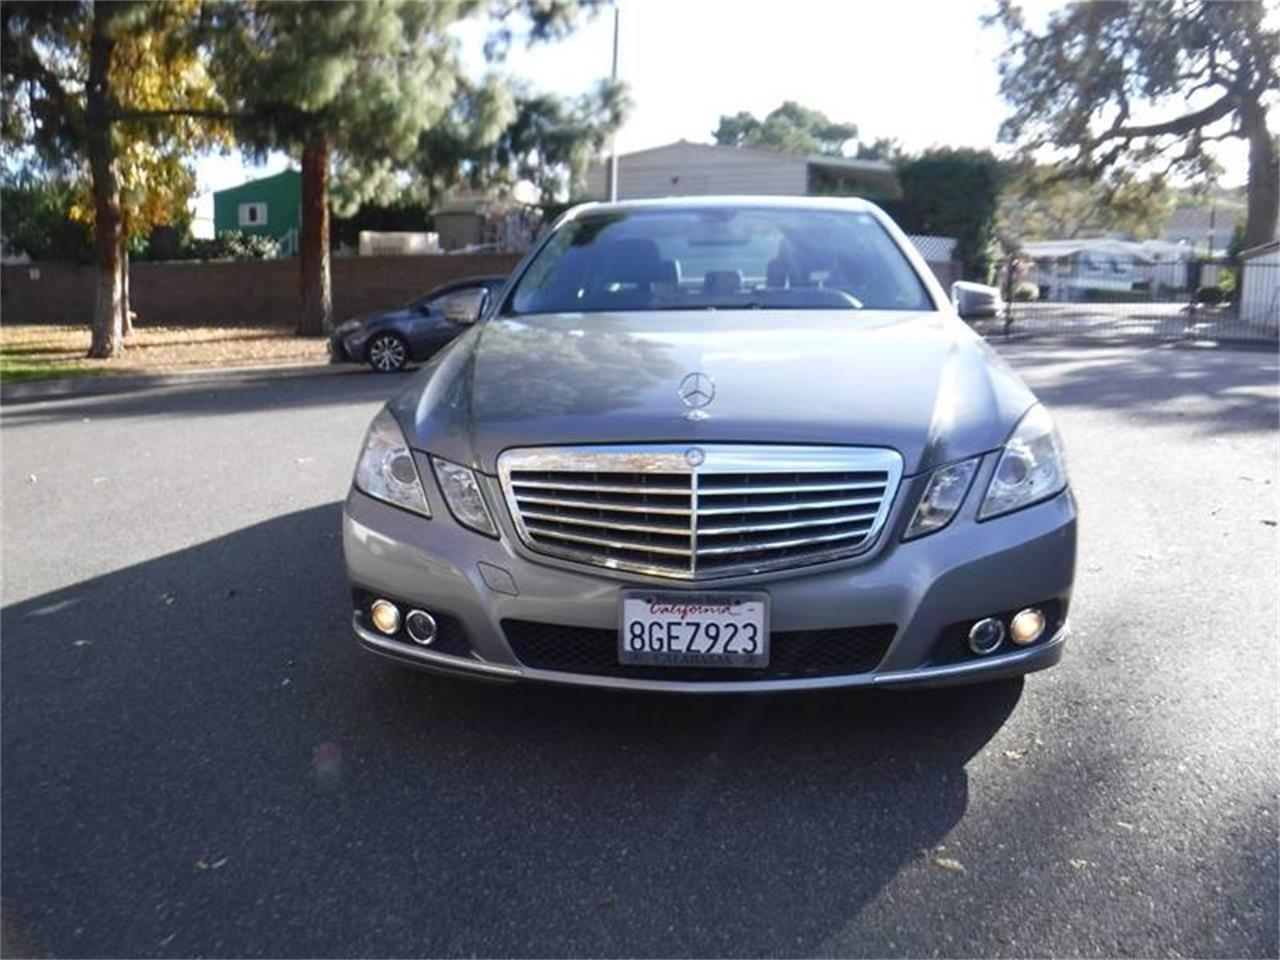 2010 Mercedes-Benz E-Class for sale in Thousand Oaks, CA – photo 2